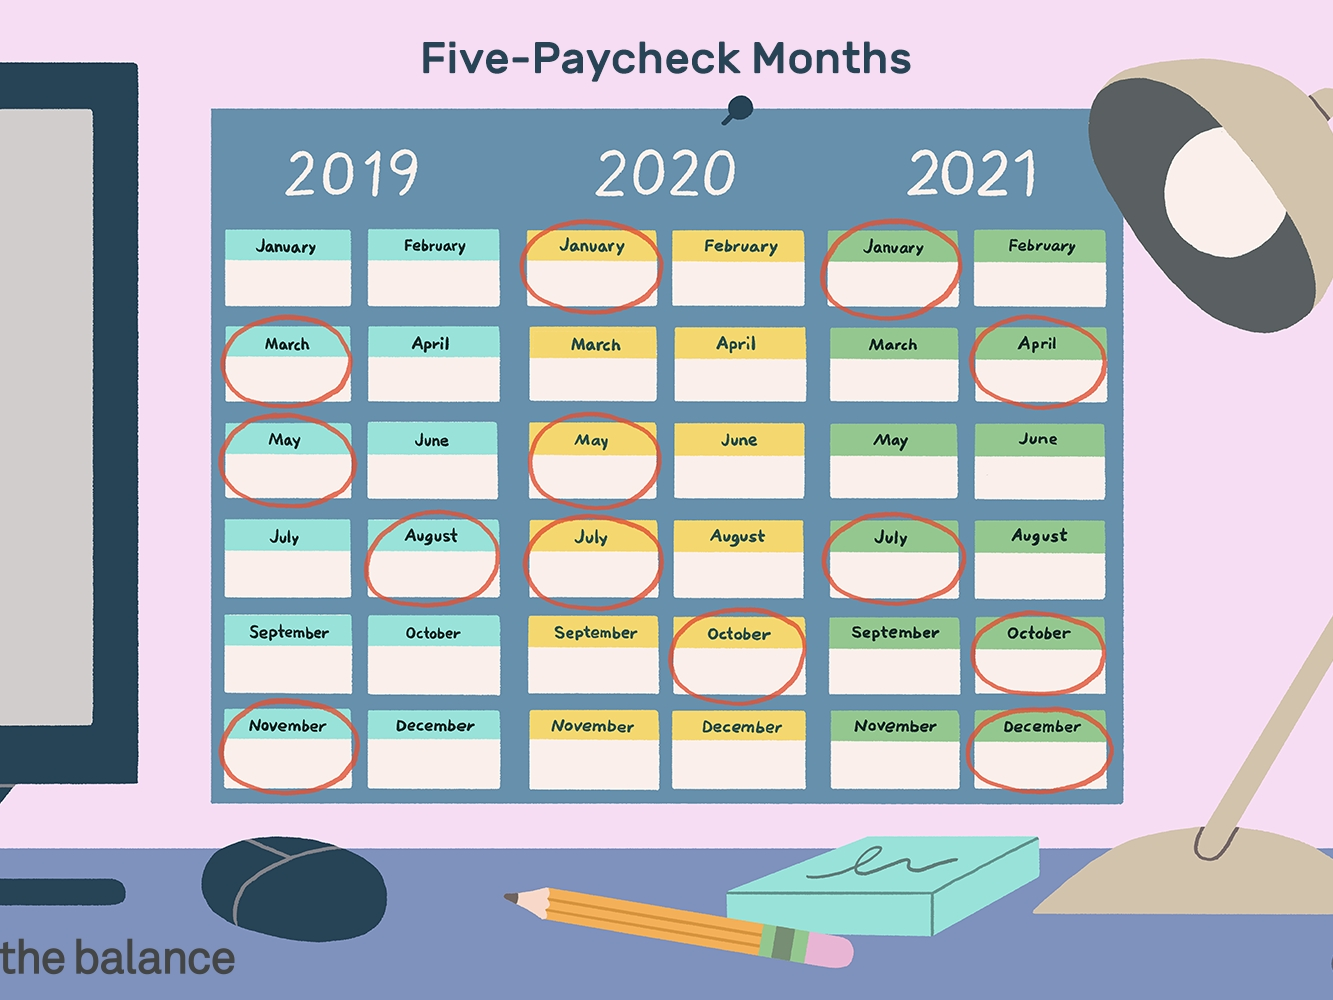 Get How Many Weeks Left In This Financial Year